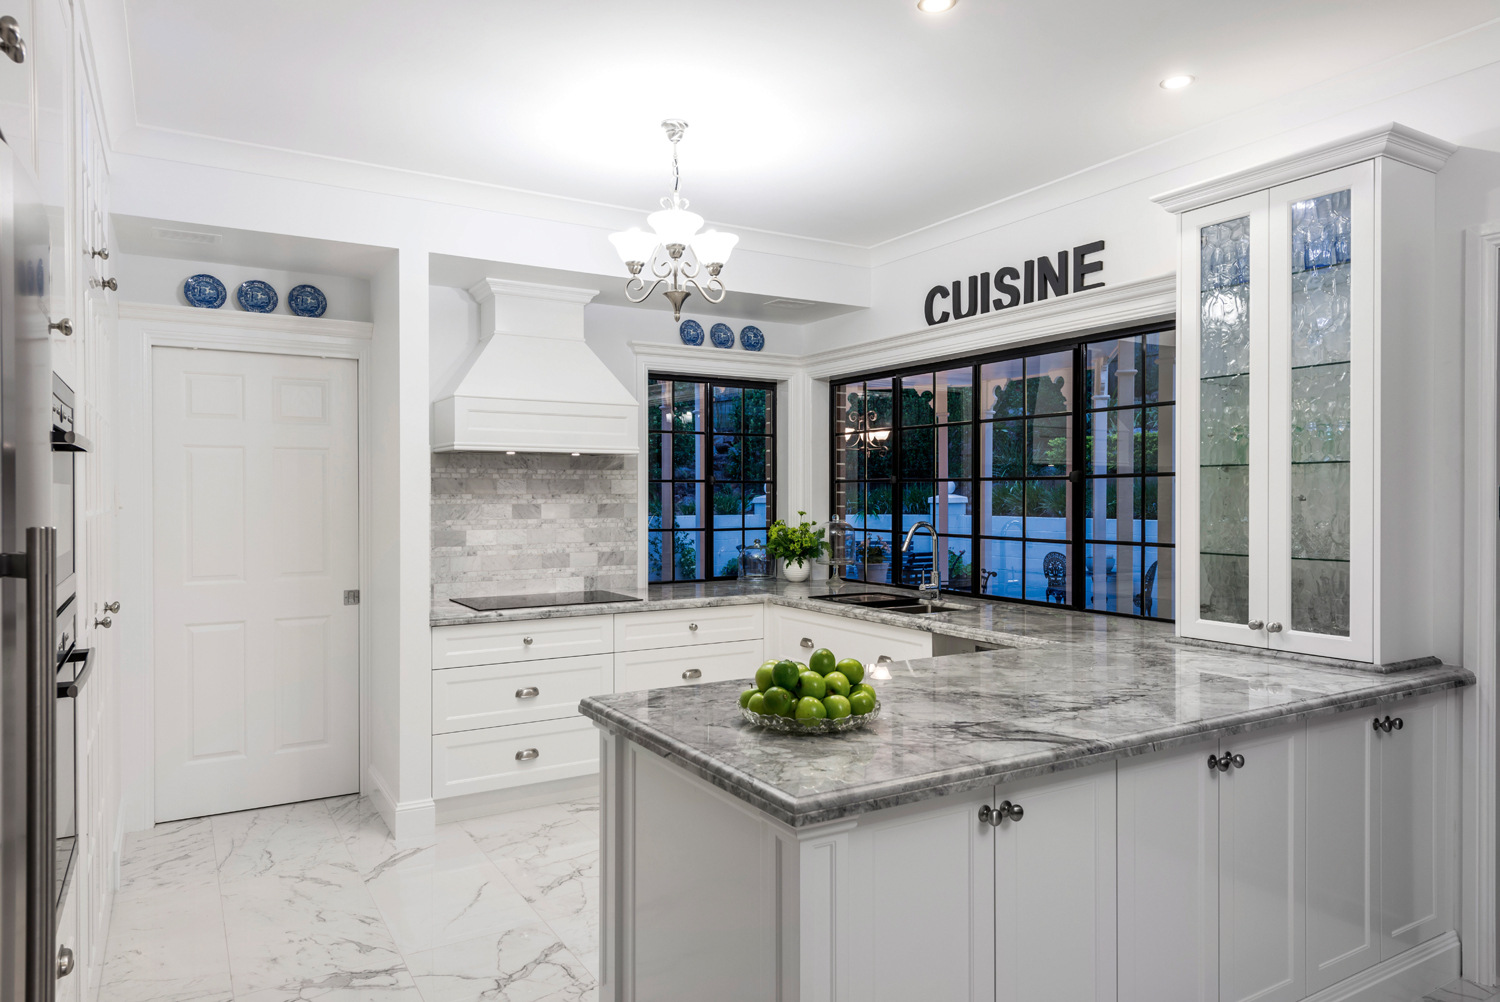 French elegance: chateau-style kitchen - Completehome